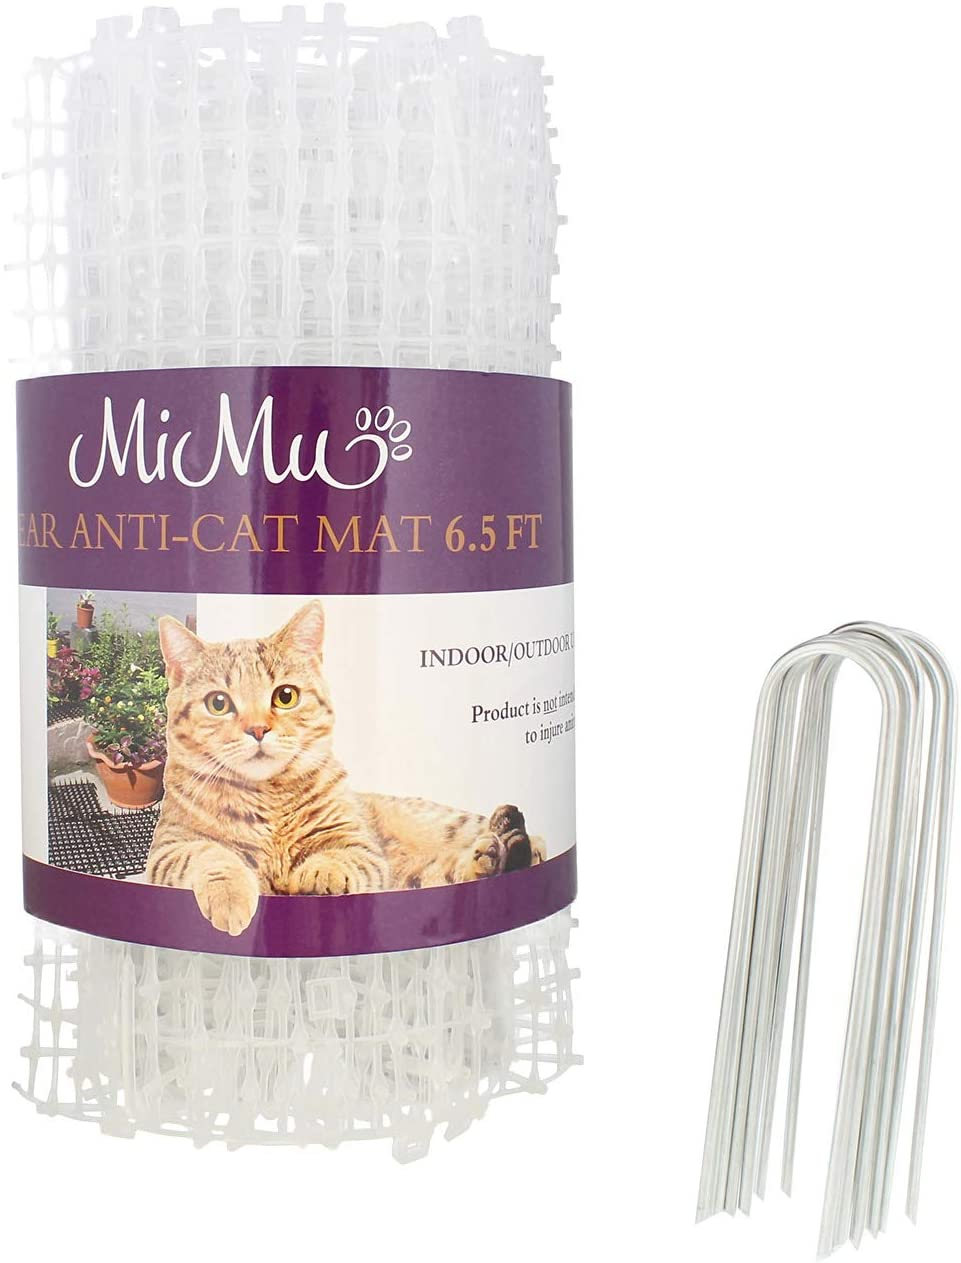 MiMu Dog & Cat Deterrent Mat Outdoor & Indoor Cat Scat Spike Mat Cat Repellent Spikes - Continuous Roll in Clear